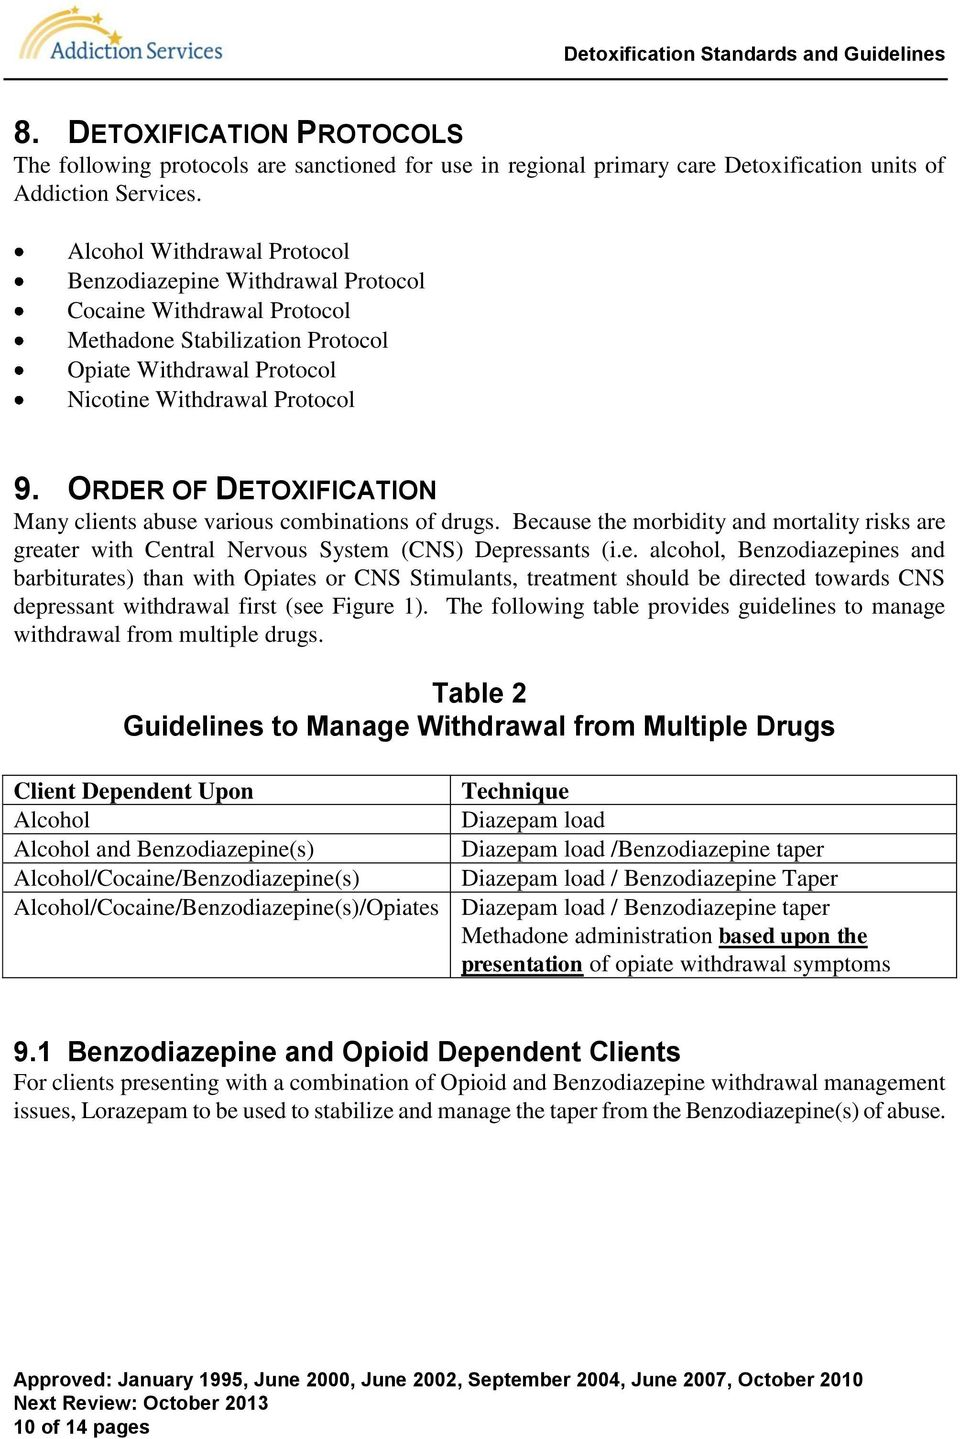 ORDER OF DETOXIFICATION Many clients abuse various combinations of drugs. Because the morbidity and mortality risks are greater with Central Nervous System (CNS) Depressants (i.e. alcohol, Benzodiazepines and barbiturates) than with Opiates or CNS Stimulants, treatment should be directed towards CNS depressant withdrawal first (see Figure 1).